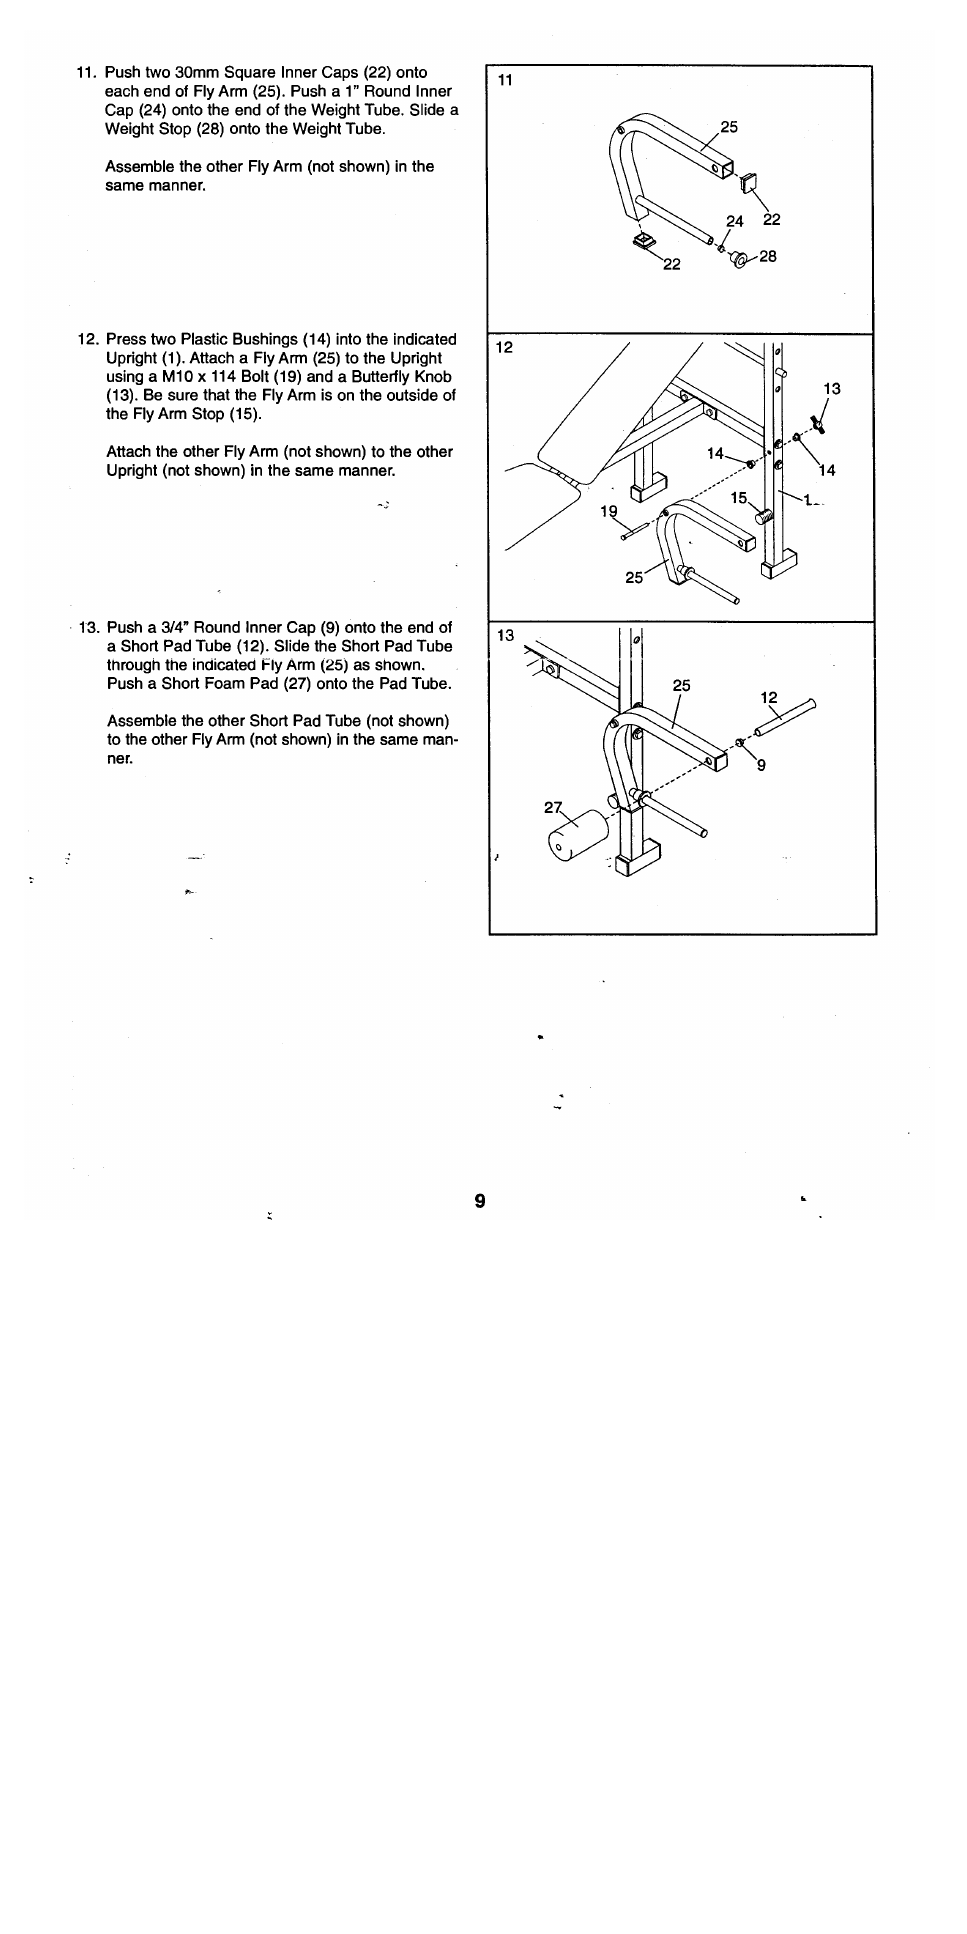 Bth Magneto Repair Manual Ebook Ac Wiring Diagram 230e 1986 Circuit And Array 1993 Mercedes 300e Owners Rh Topmal